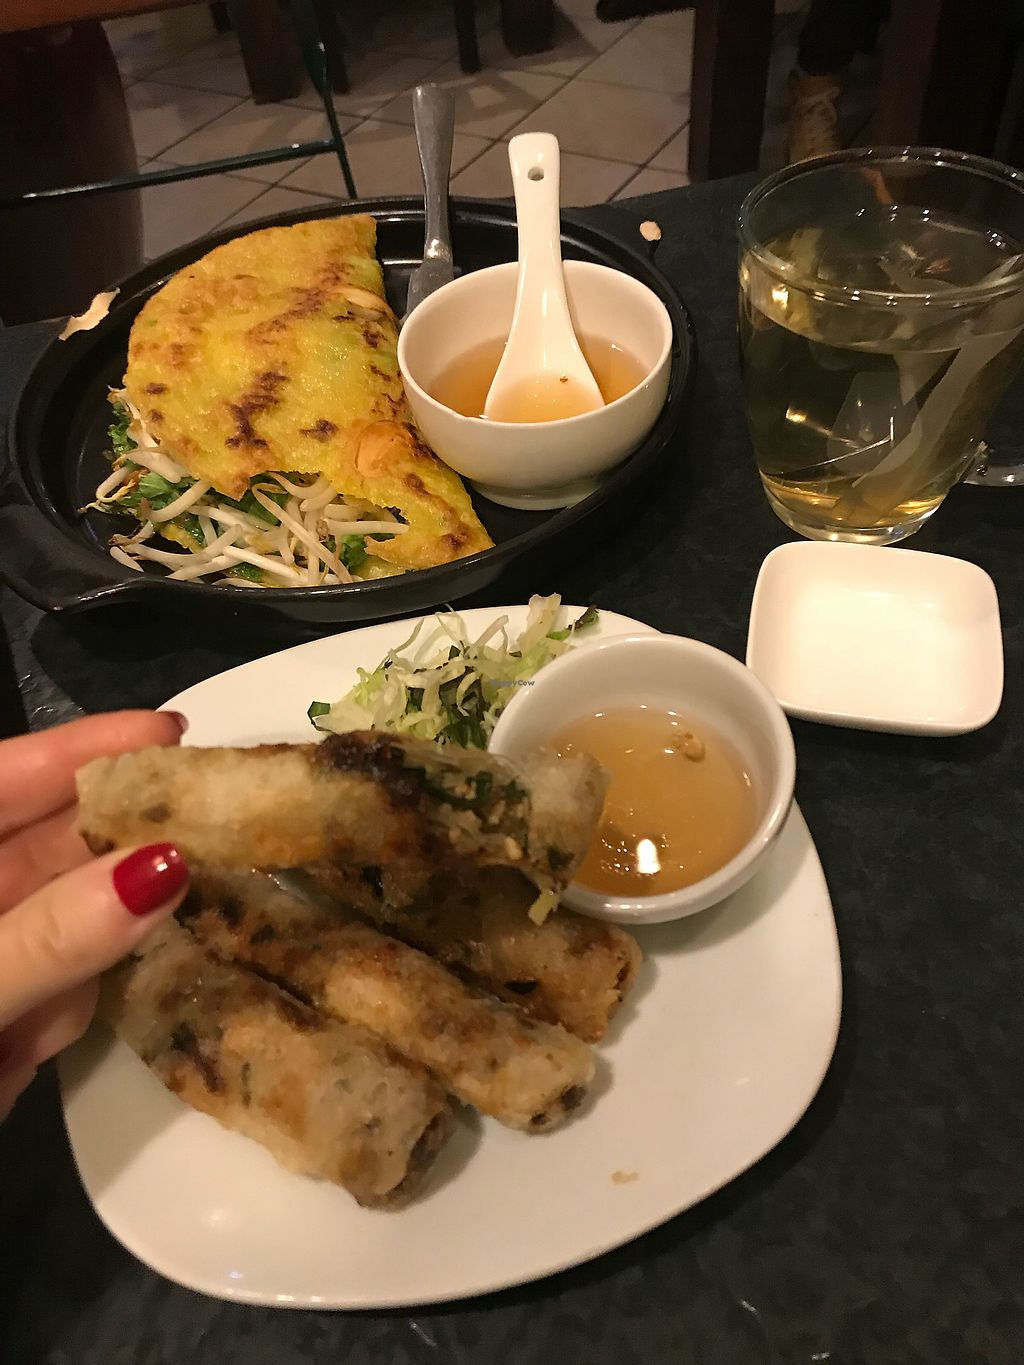 """Photo of Chay Village - Friedrichshain  by <a href=""""/members/profile/Beaa"""">Beaa</a> <br/>Spring rolls - good but a bit greasy  <br/> December 23, 2017  - <a href='/contact/abuse/image/45036/338356'>Report</a>"""